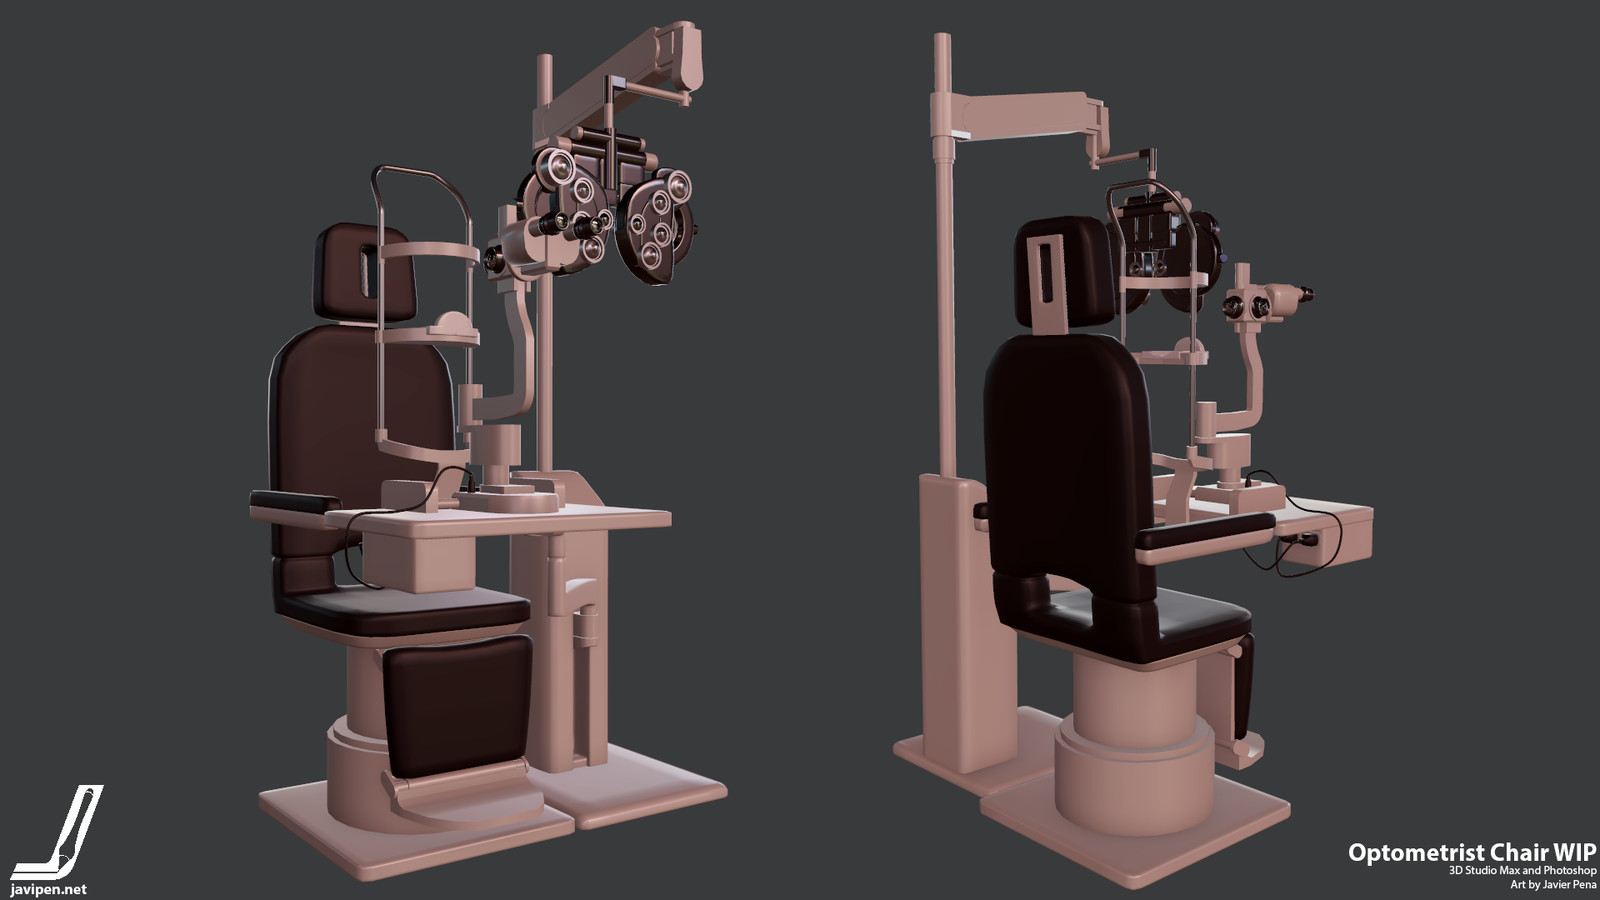 Optometrist Chair WIP